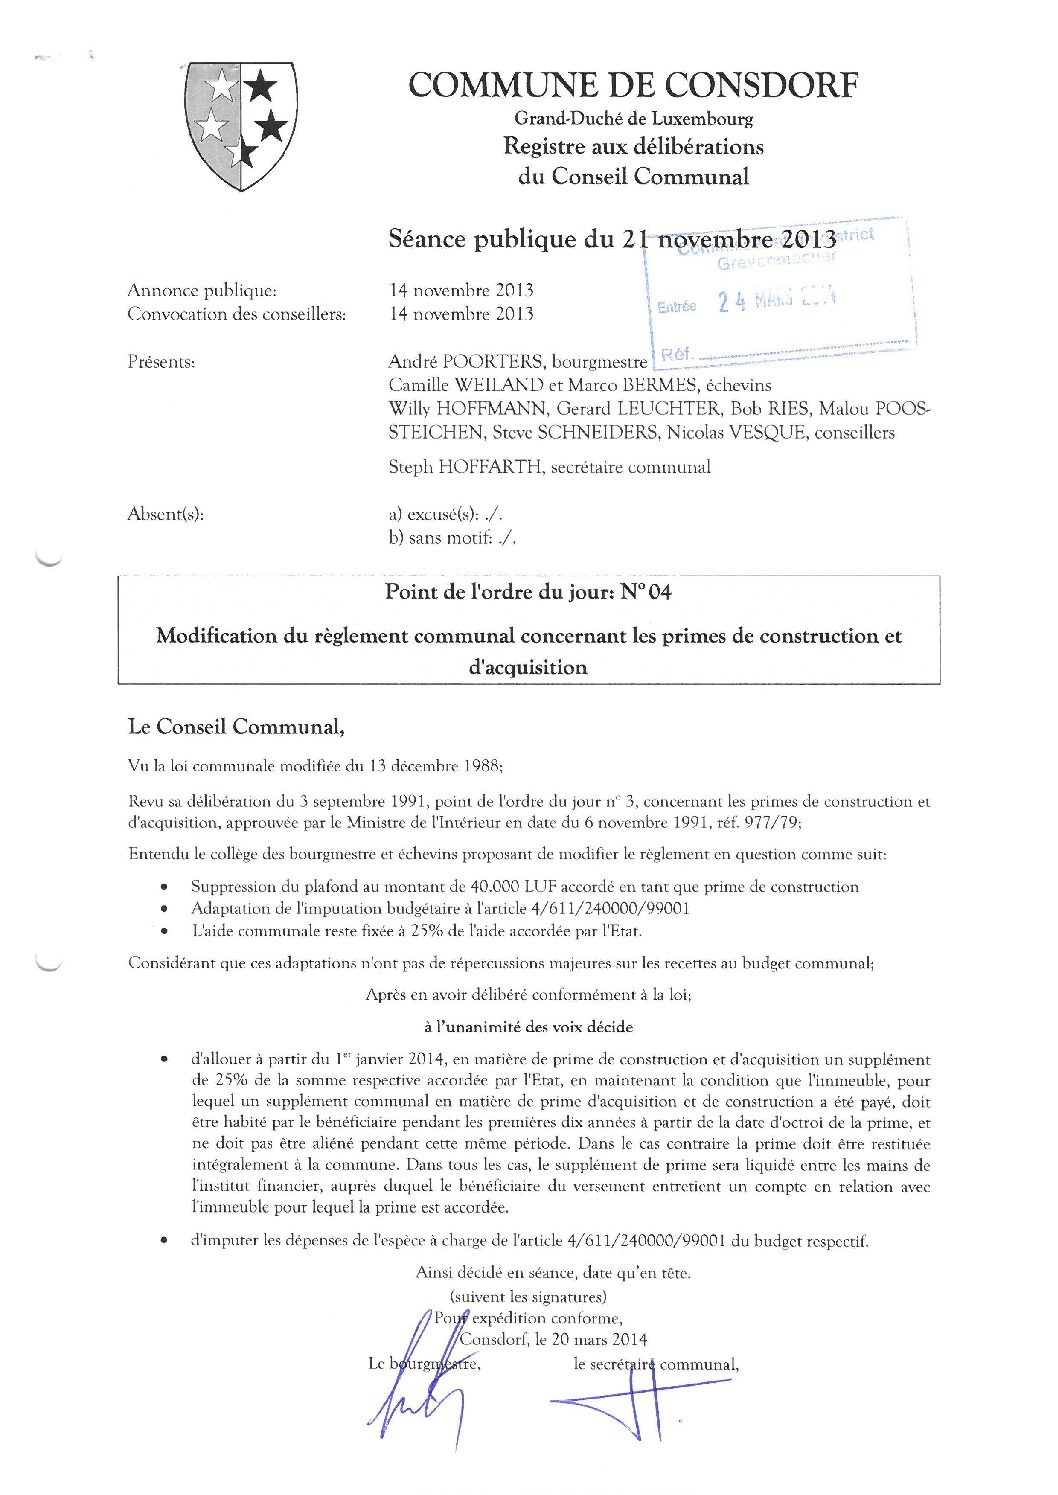 Primes de construction et acquisition